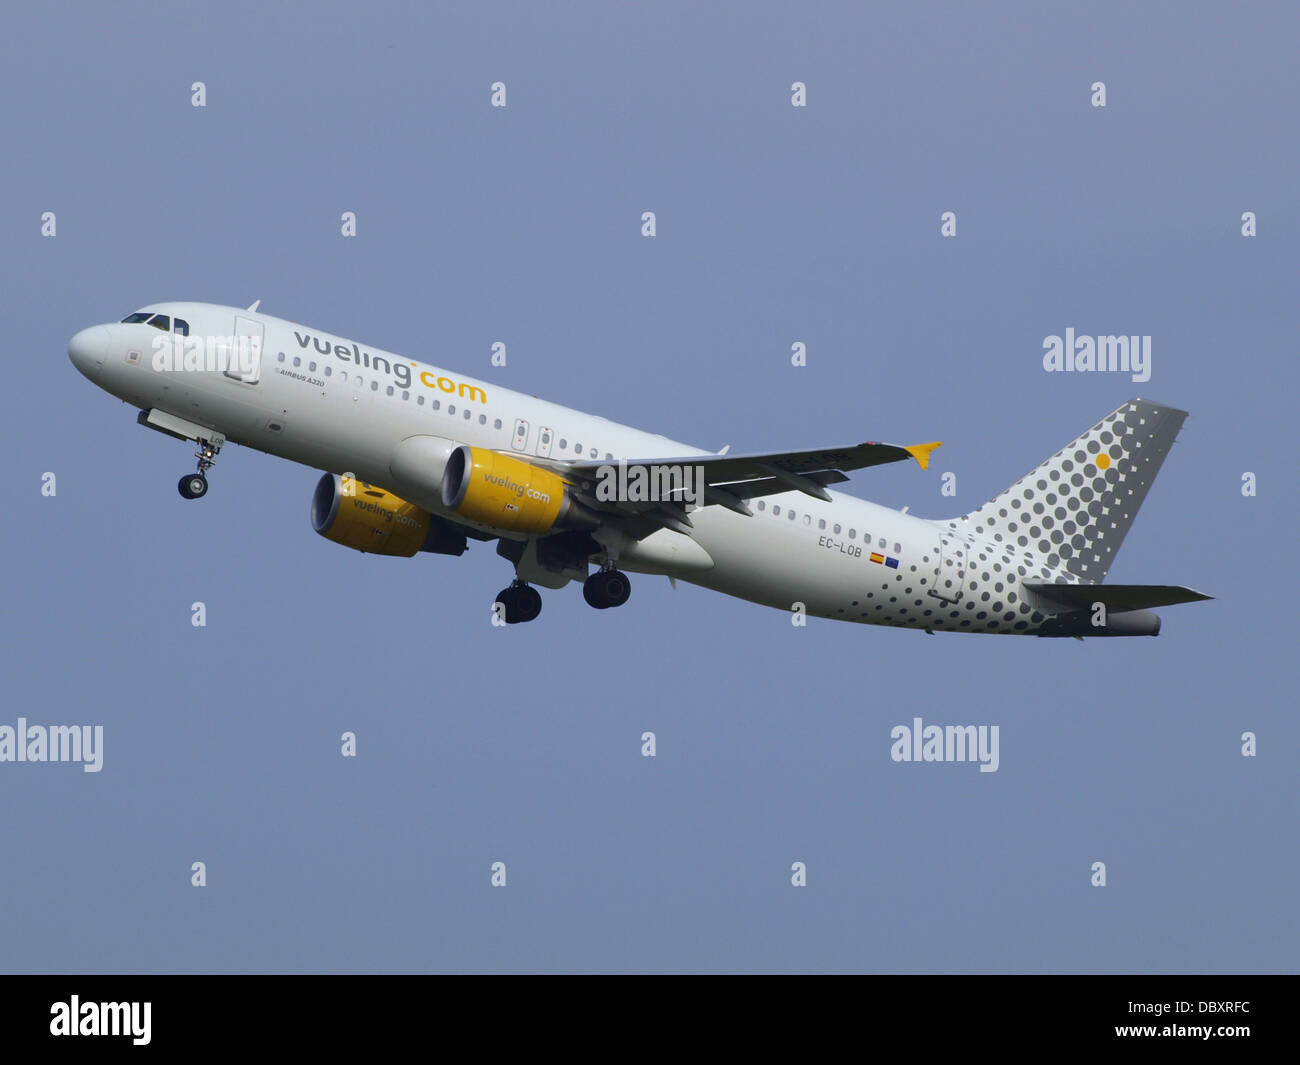 EC-LOB Vueling Airbus A320-214 - cn 4849 take-off 13july2013 1 - Stock Image